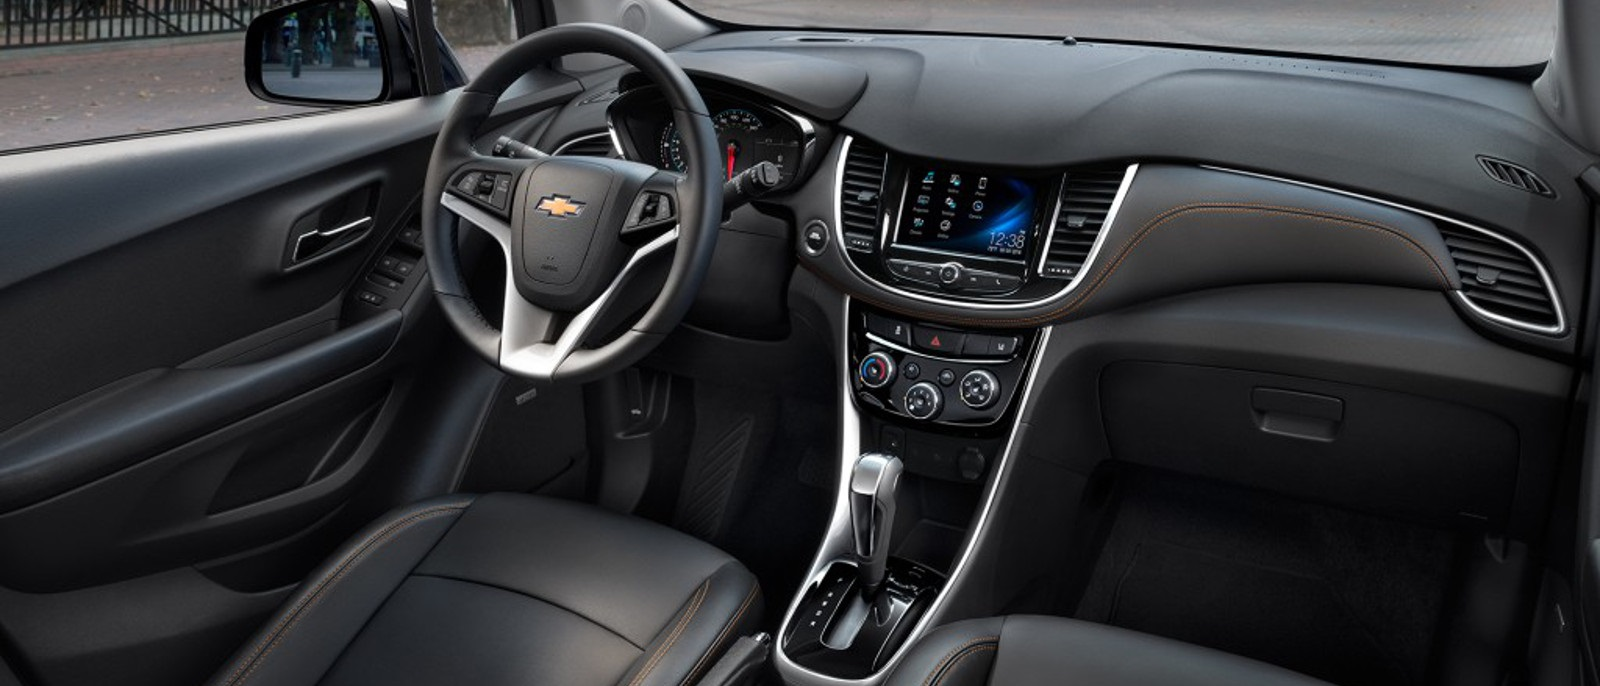 The dashboard and front seats are shown in a 2017 Chevy Trax.